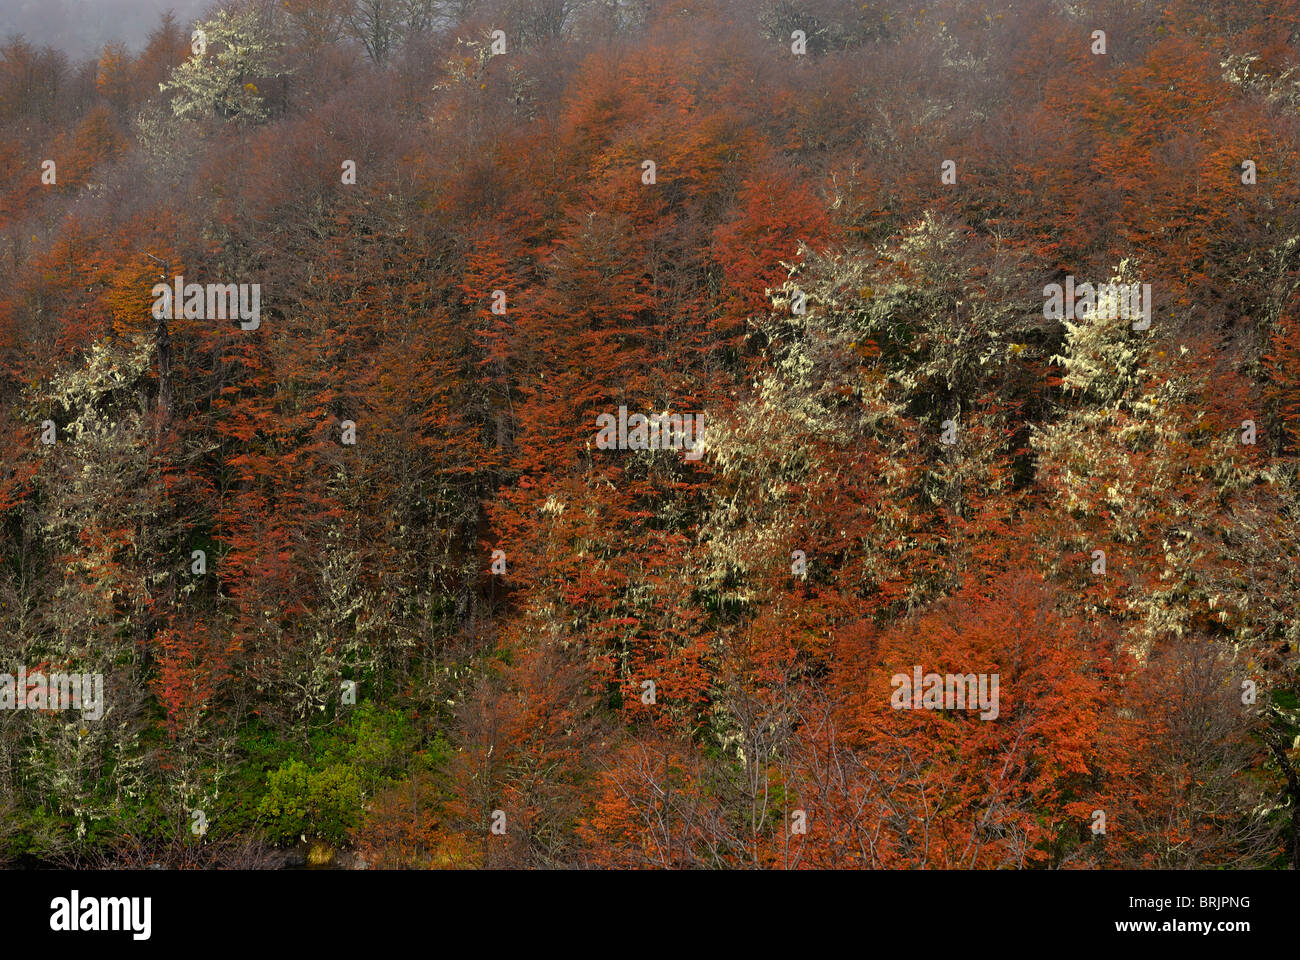 Autumn in Paso Puyehue also known as Cardenal Samoré, between Argentina and Chile. - Stock Image